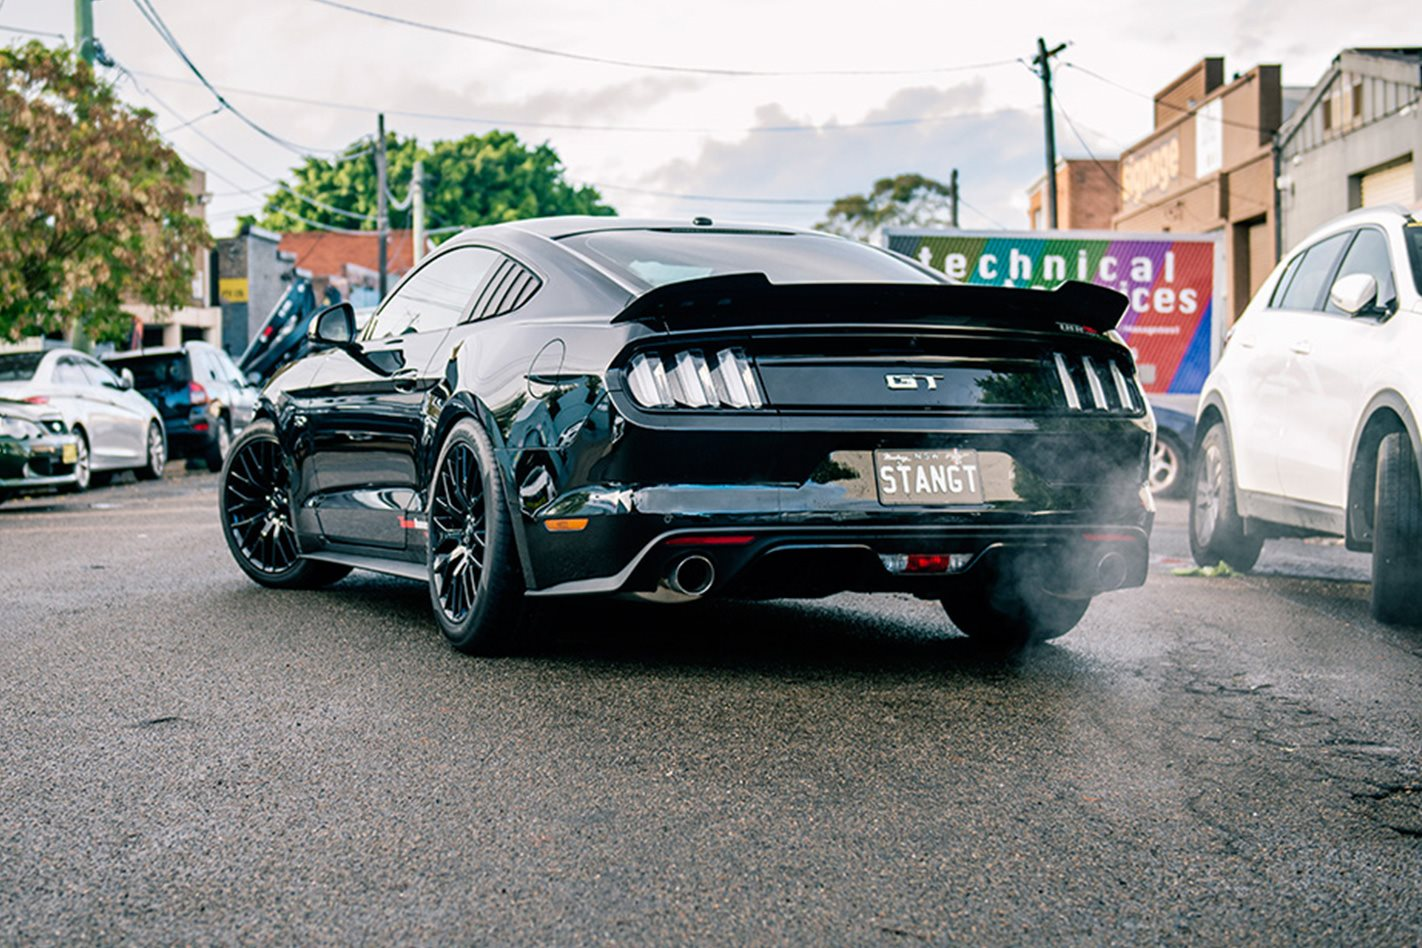 Tunehouse-Ford-Mustang-GT-rear.jpg